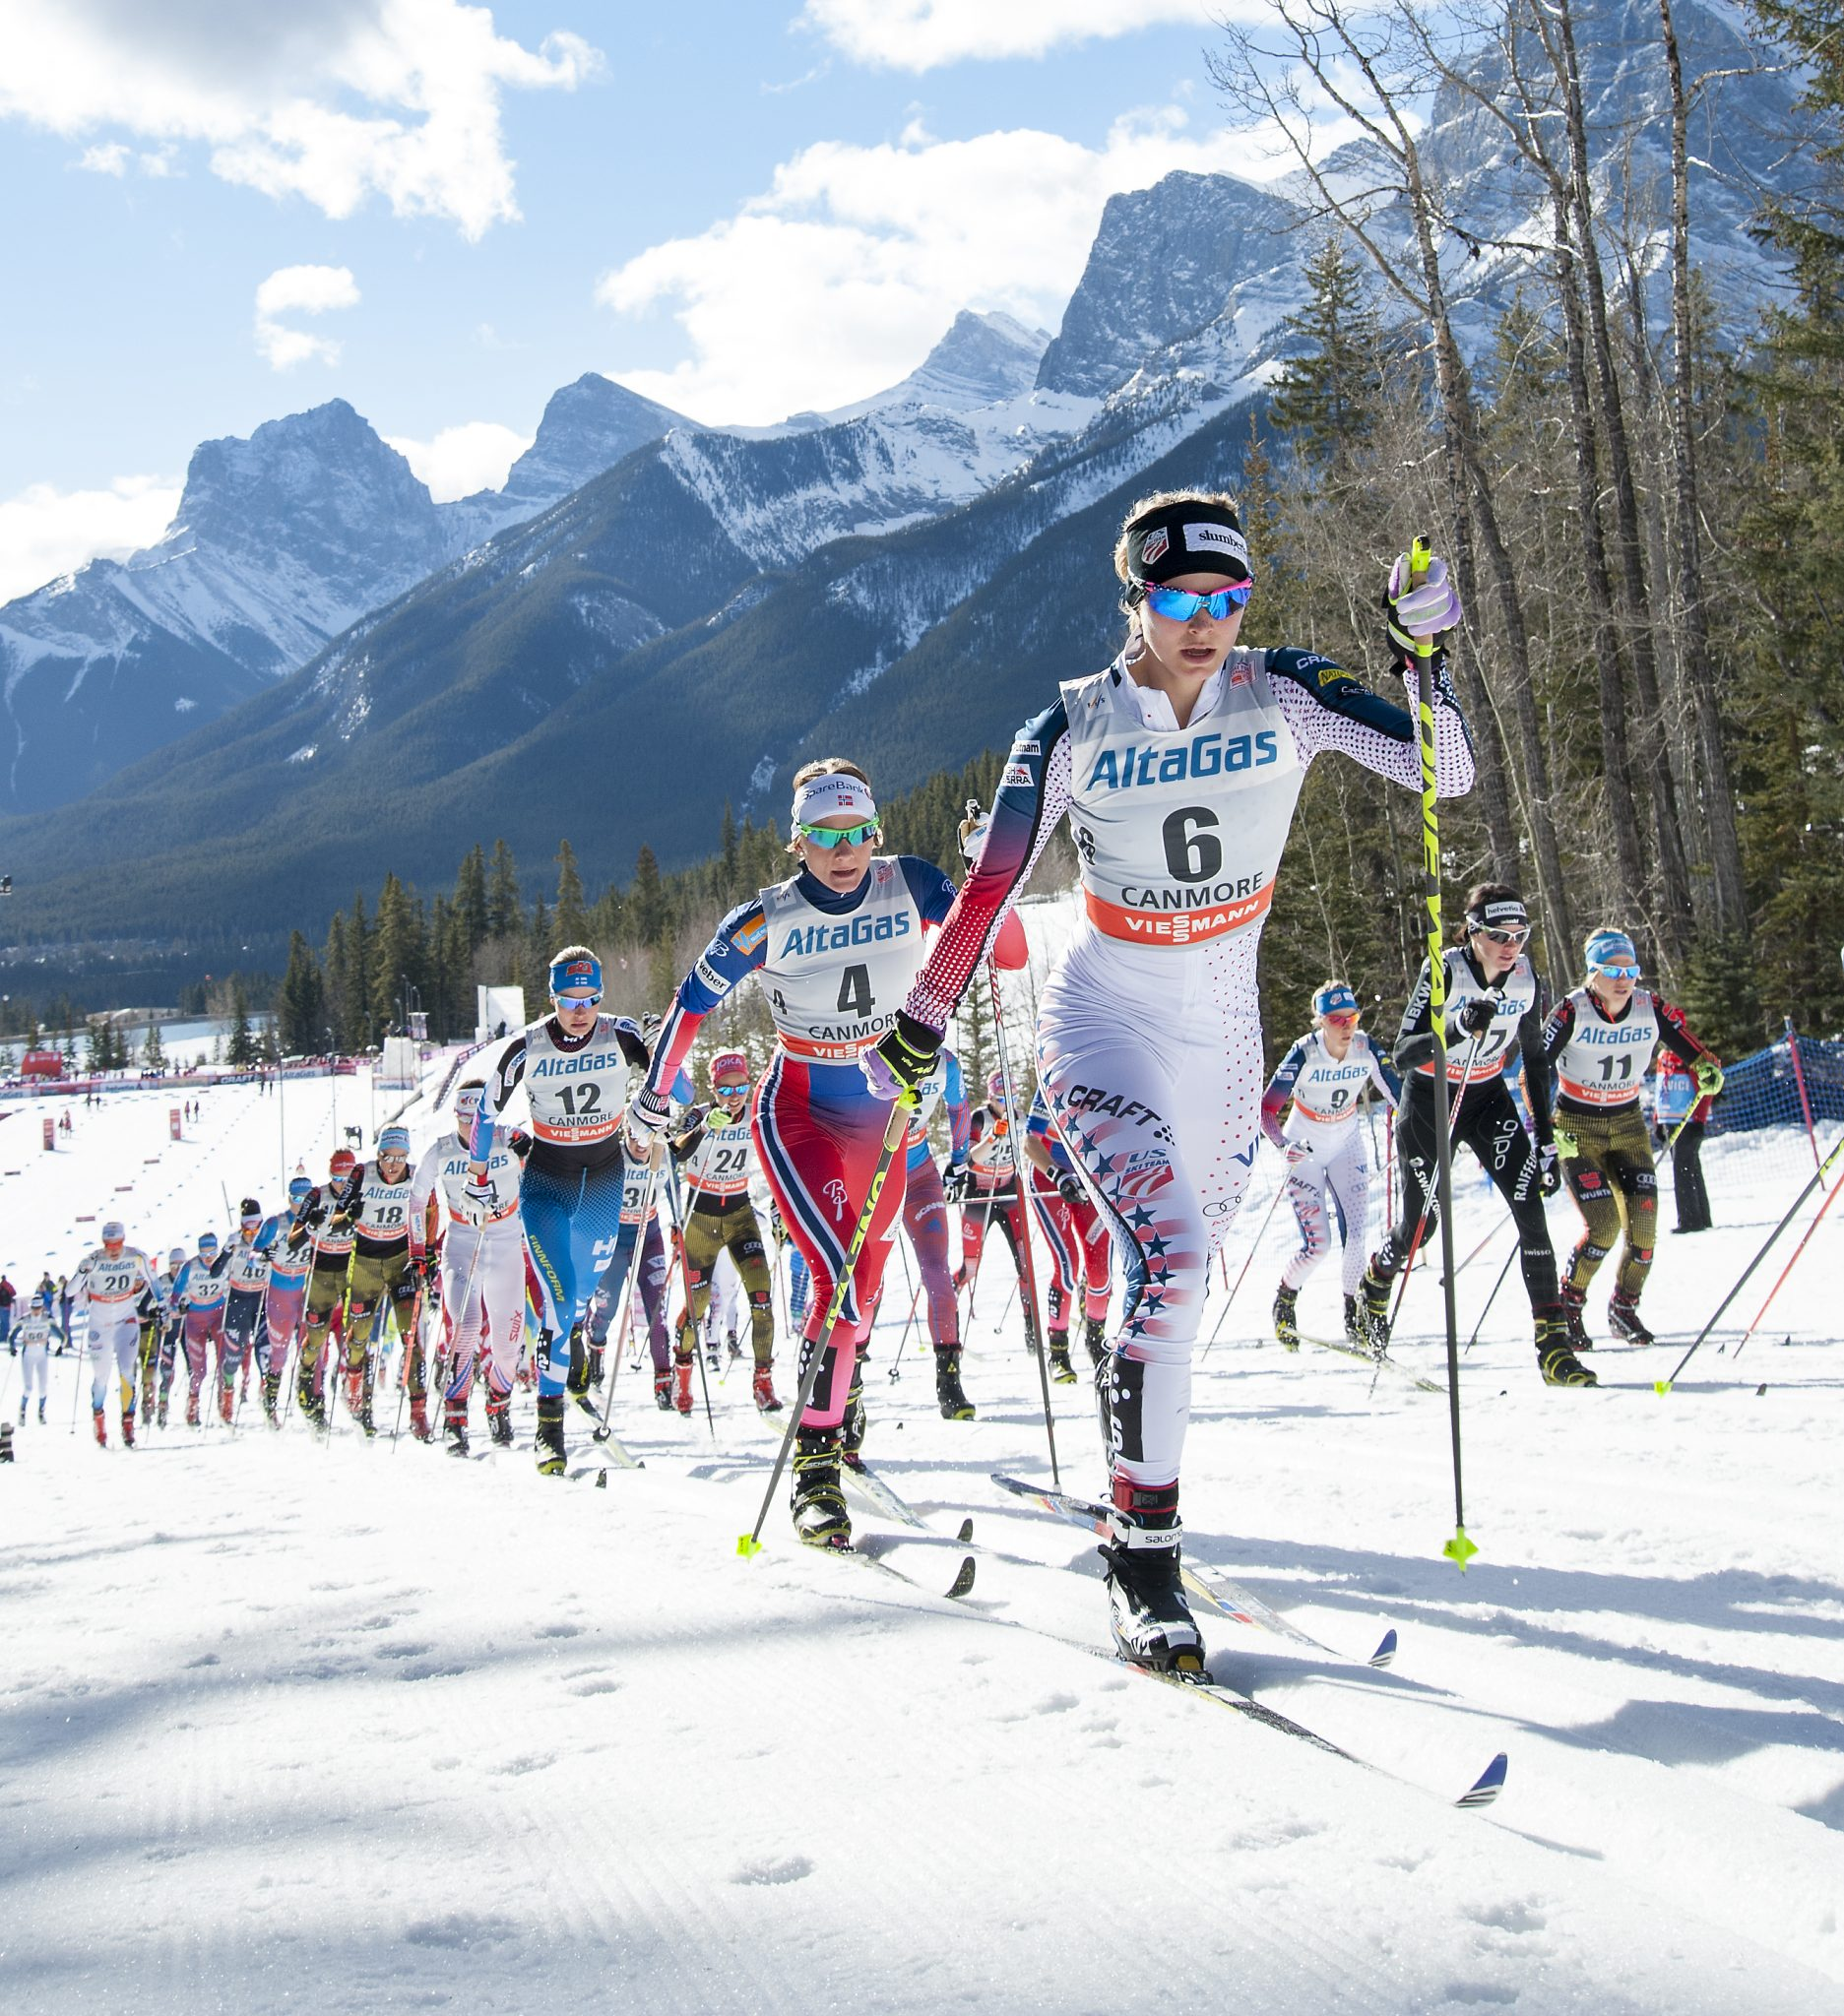 The Best Of Ski Tour Canada – Skiathlon, March 9, 2016